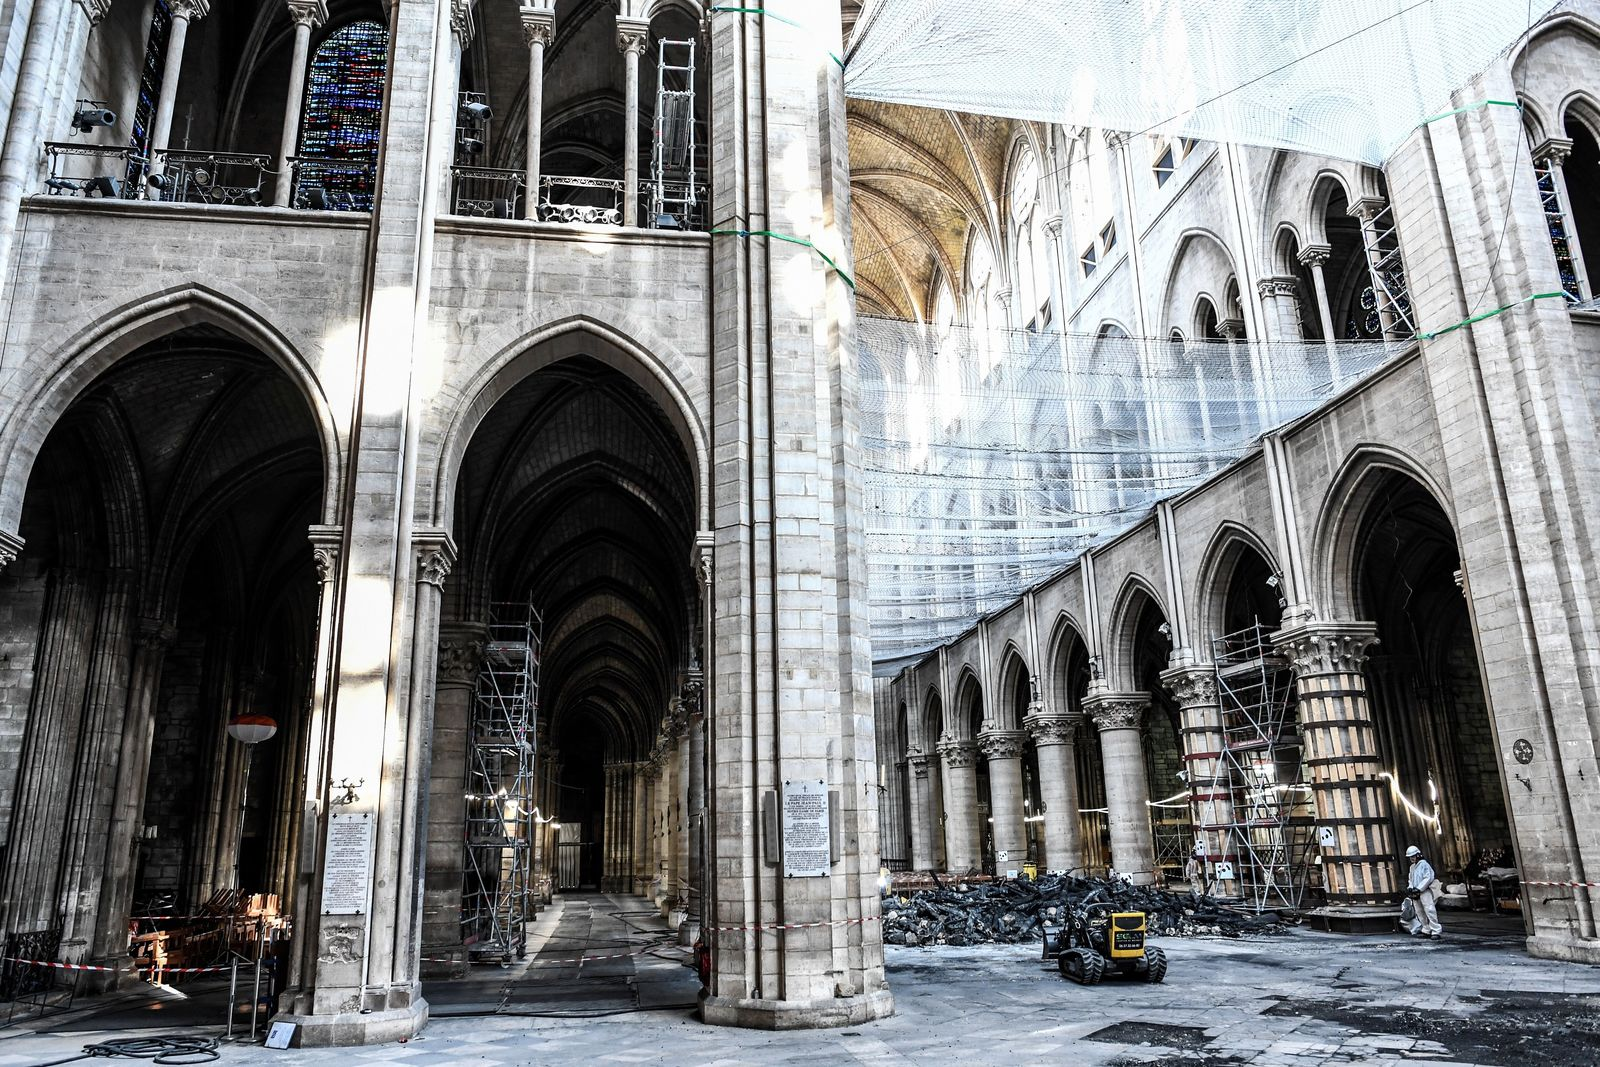 Damage on the nave and rubble during preliminary work are pictured in the Notre-Dame de Paris Cathedral three months after a major fire Wednesday, July 17, 2019 in Paris. The chief architect of France's historic monuments says that three months after the April 15 fire that devastated Notre Dame Cathedral the site is still being secured. (Stephane de Sakutin/Pool via AP)